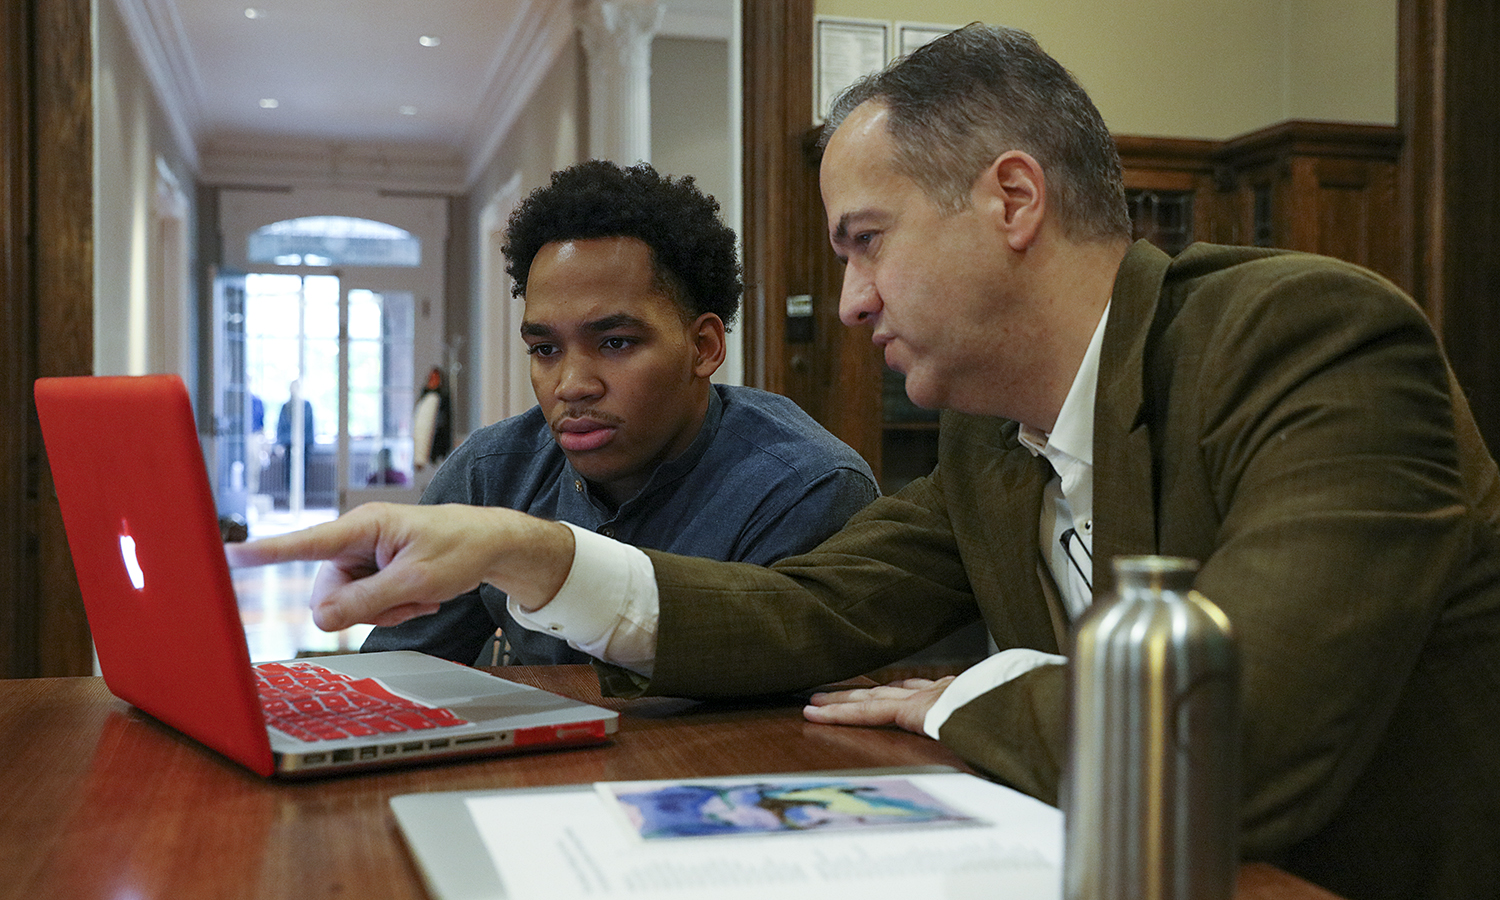 Garth Burke '18 and Associate Professor of Art and Architecture Jeffrey Blankenship review course material in Houghton House. HWS professors offer individualized support to students outside the classroom during office hours, which students are encouraged to attend regularly.